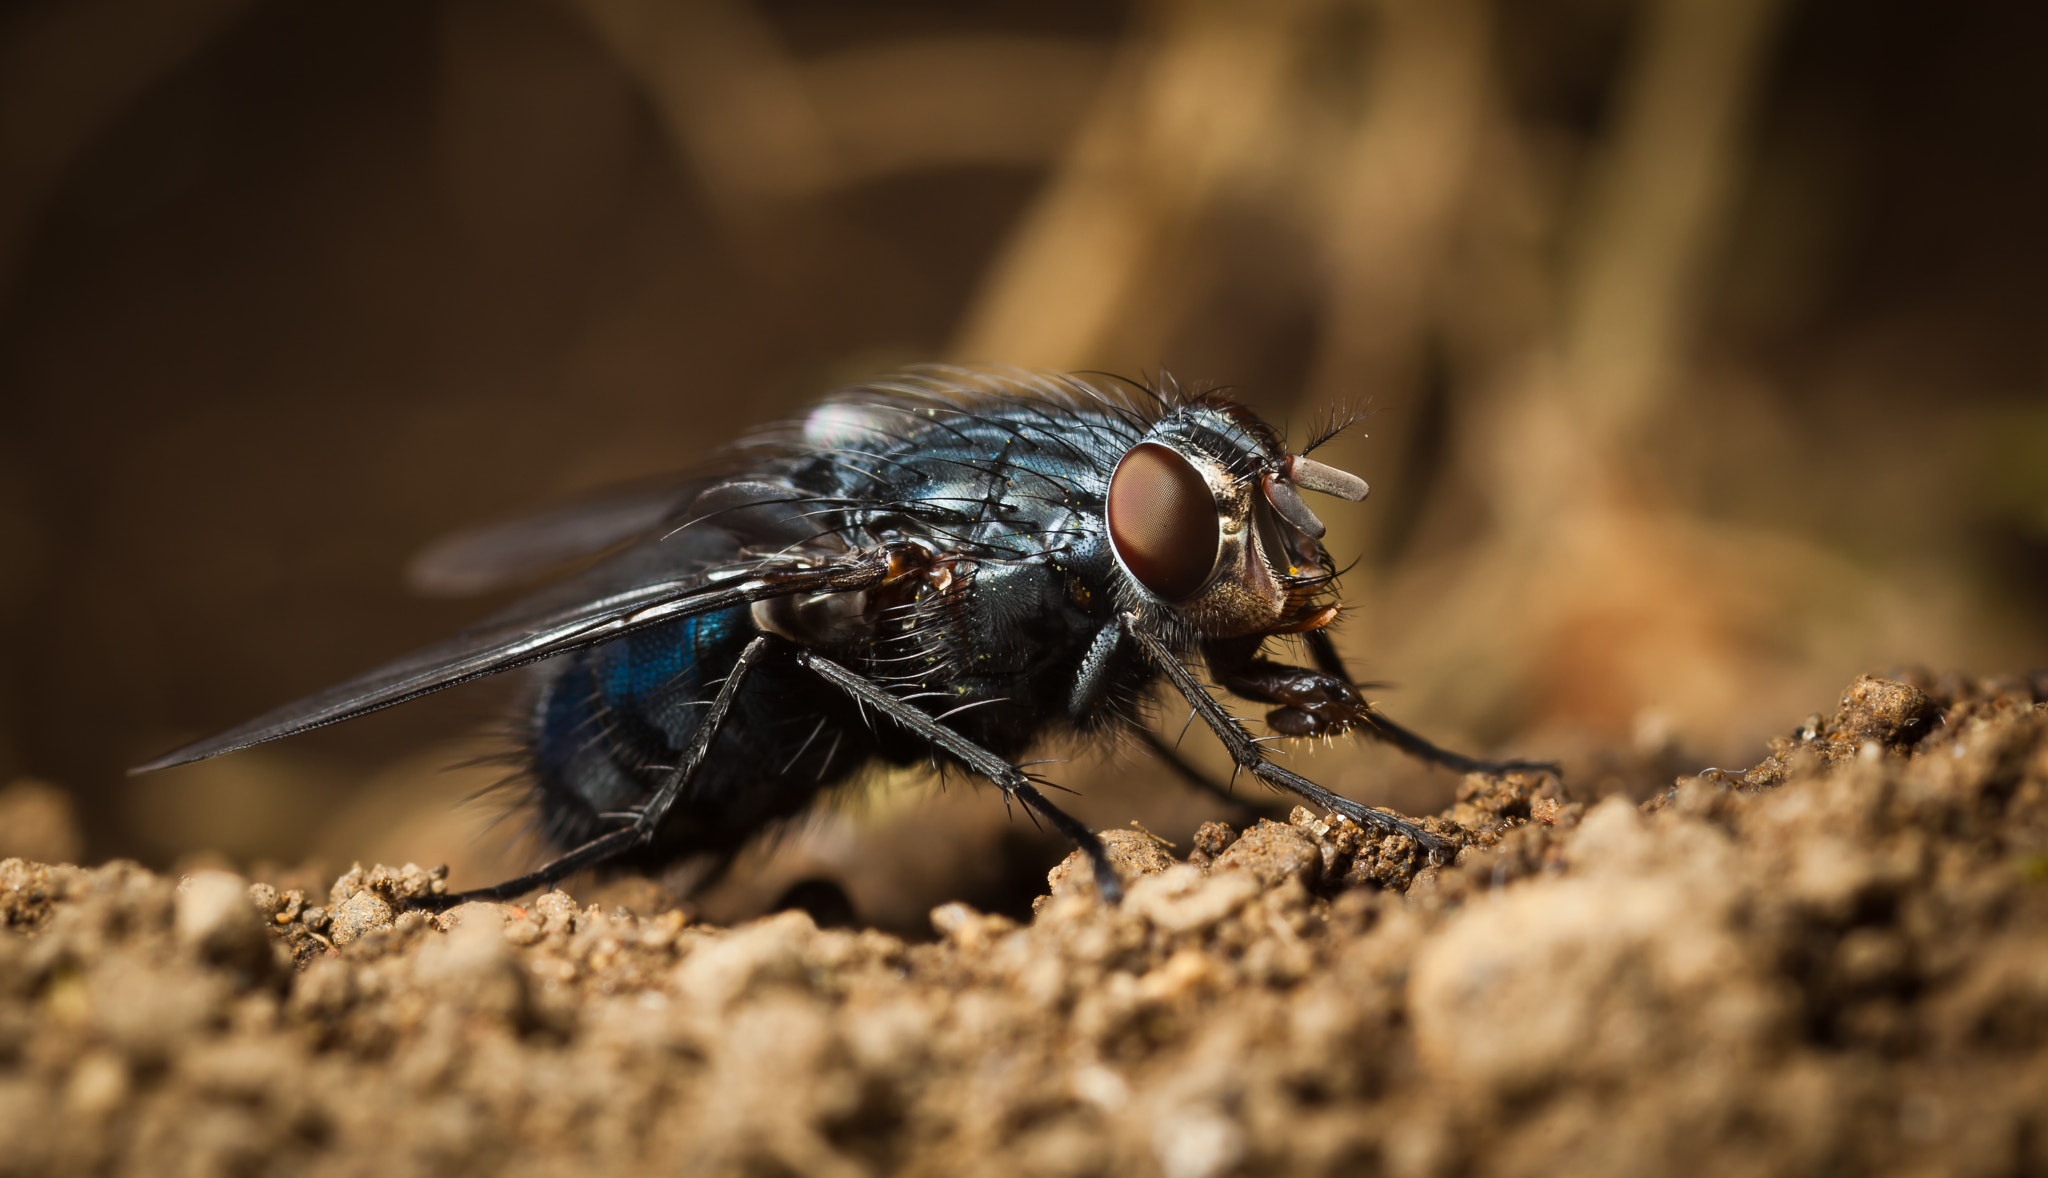 Photograph Fly by Ruben Tavares on 500px